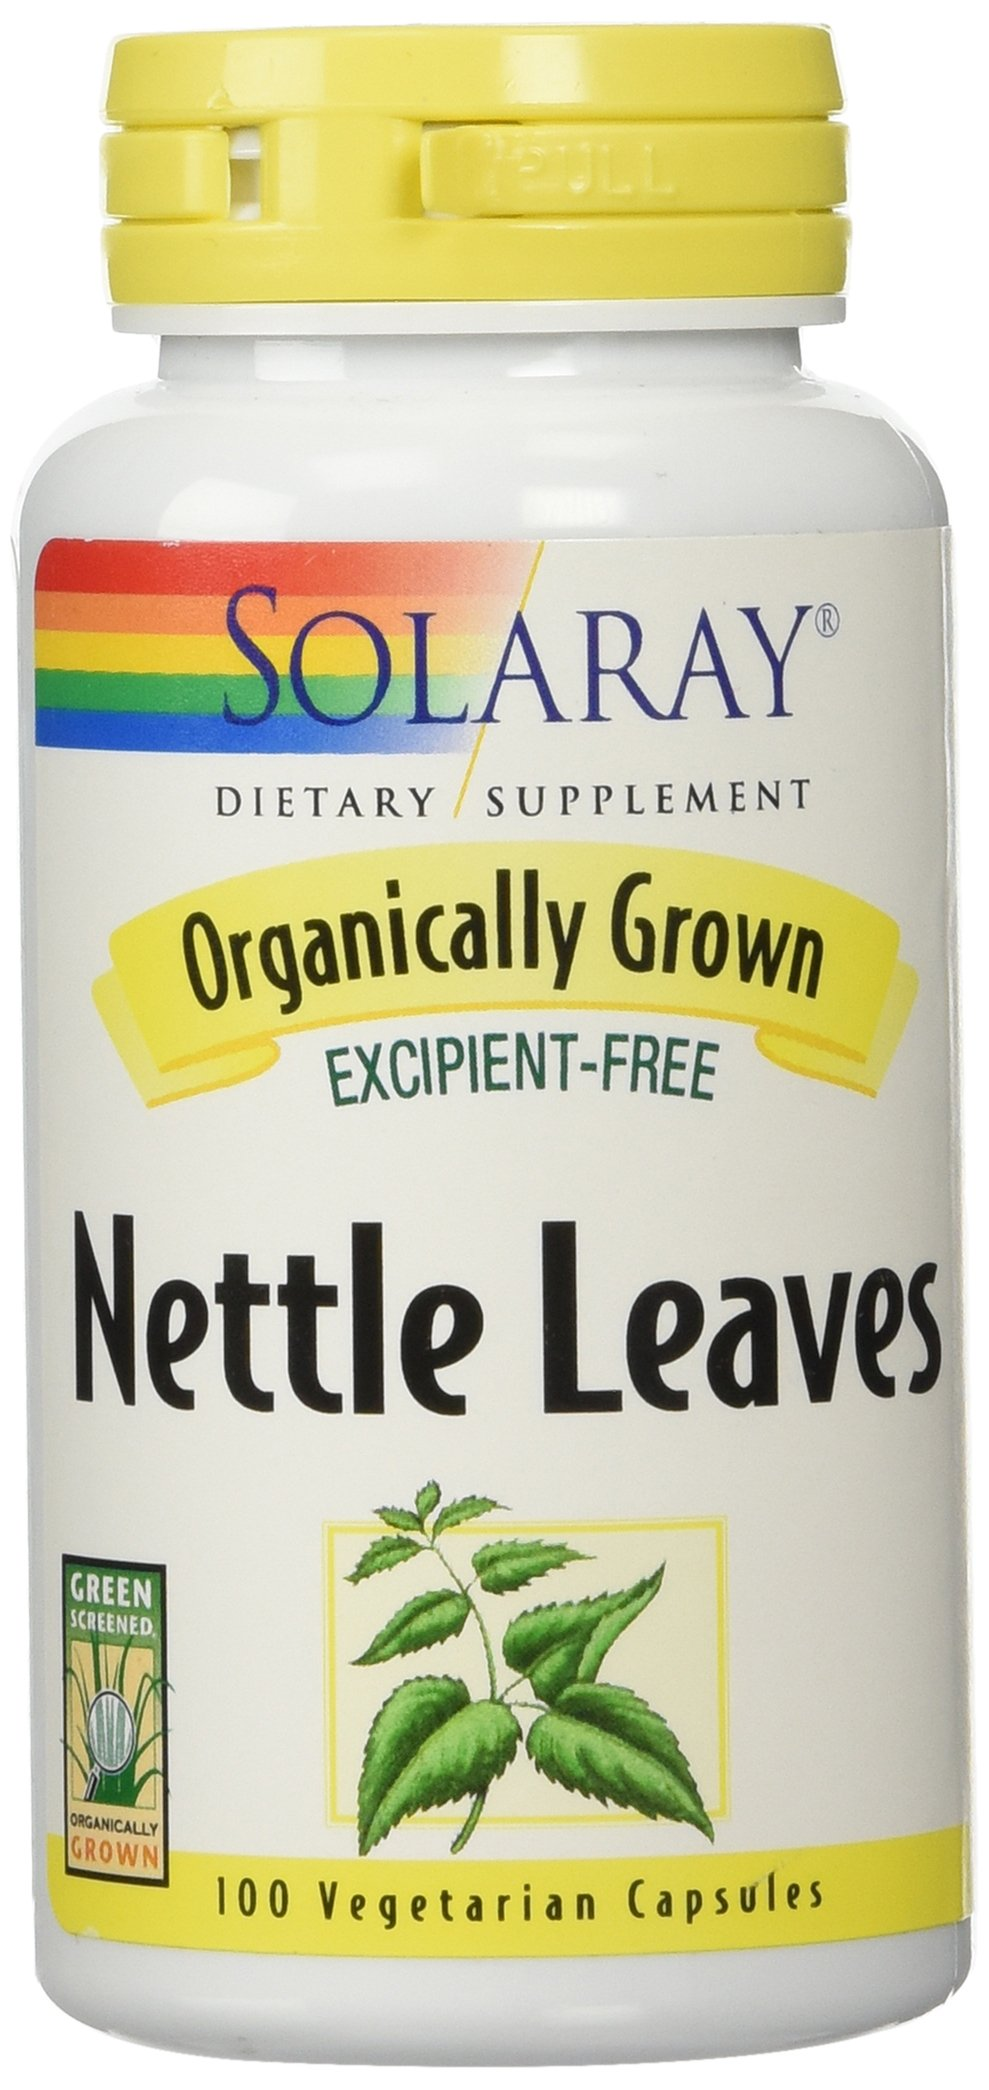 Solaray Organic Nettle Leaves Supplement, 450 mg, 100 Count